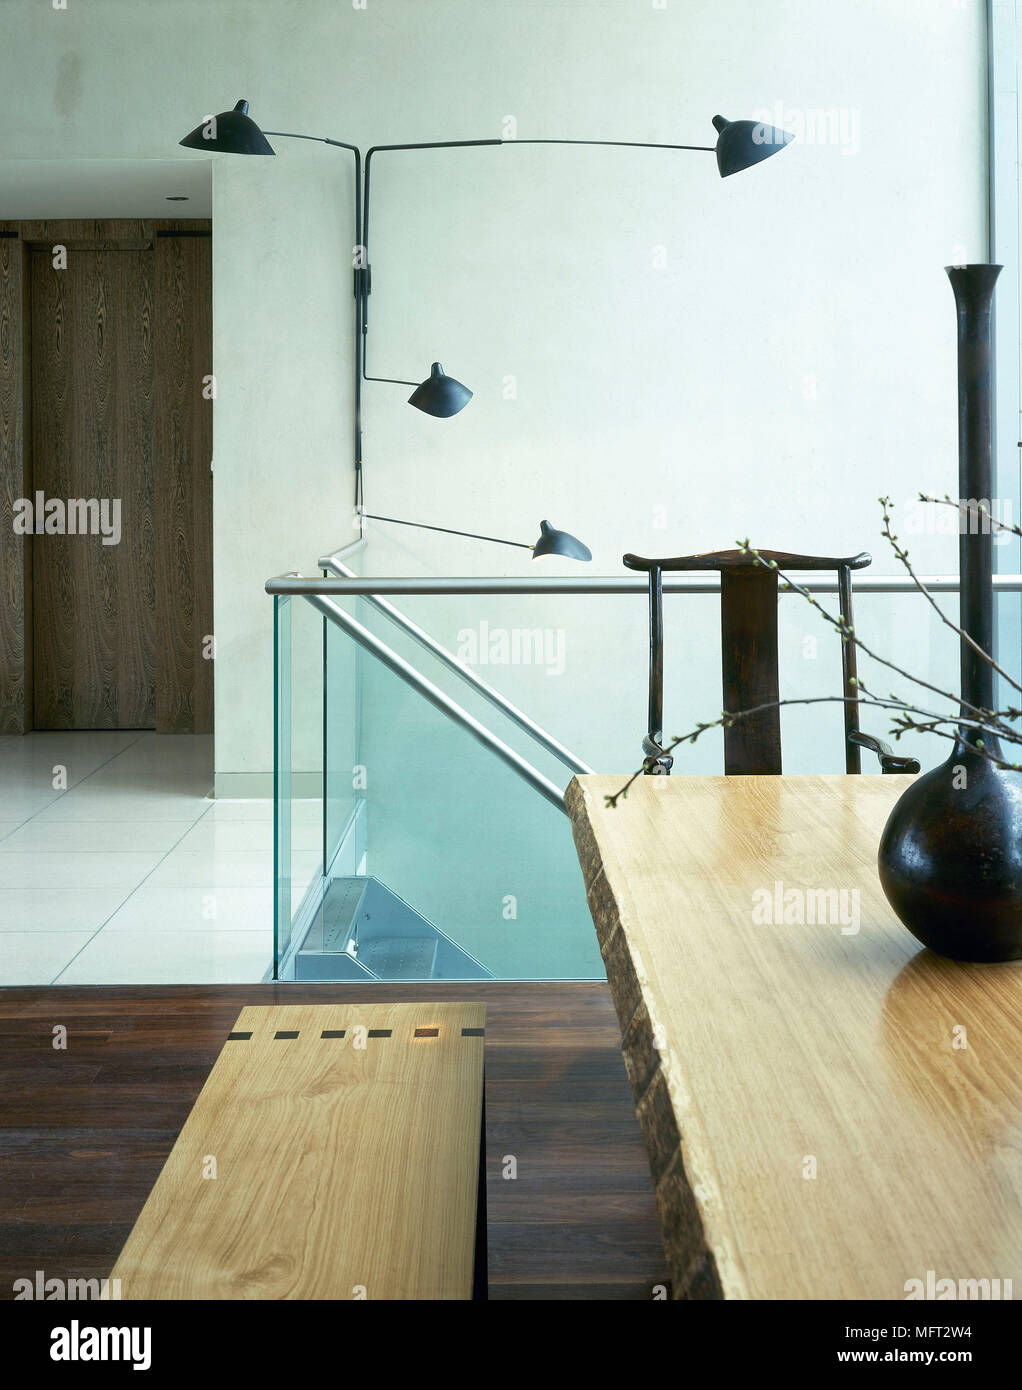 Wooden Bench Seat And Table Next To Staircase With Glass Panels In Contemporary Dining Room